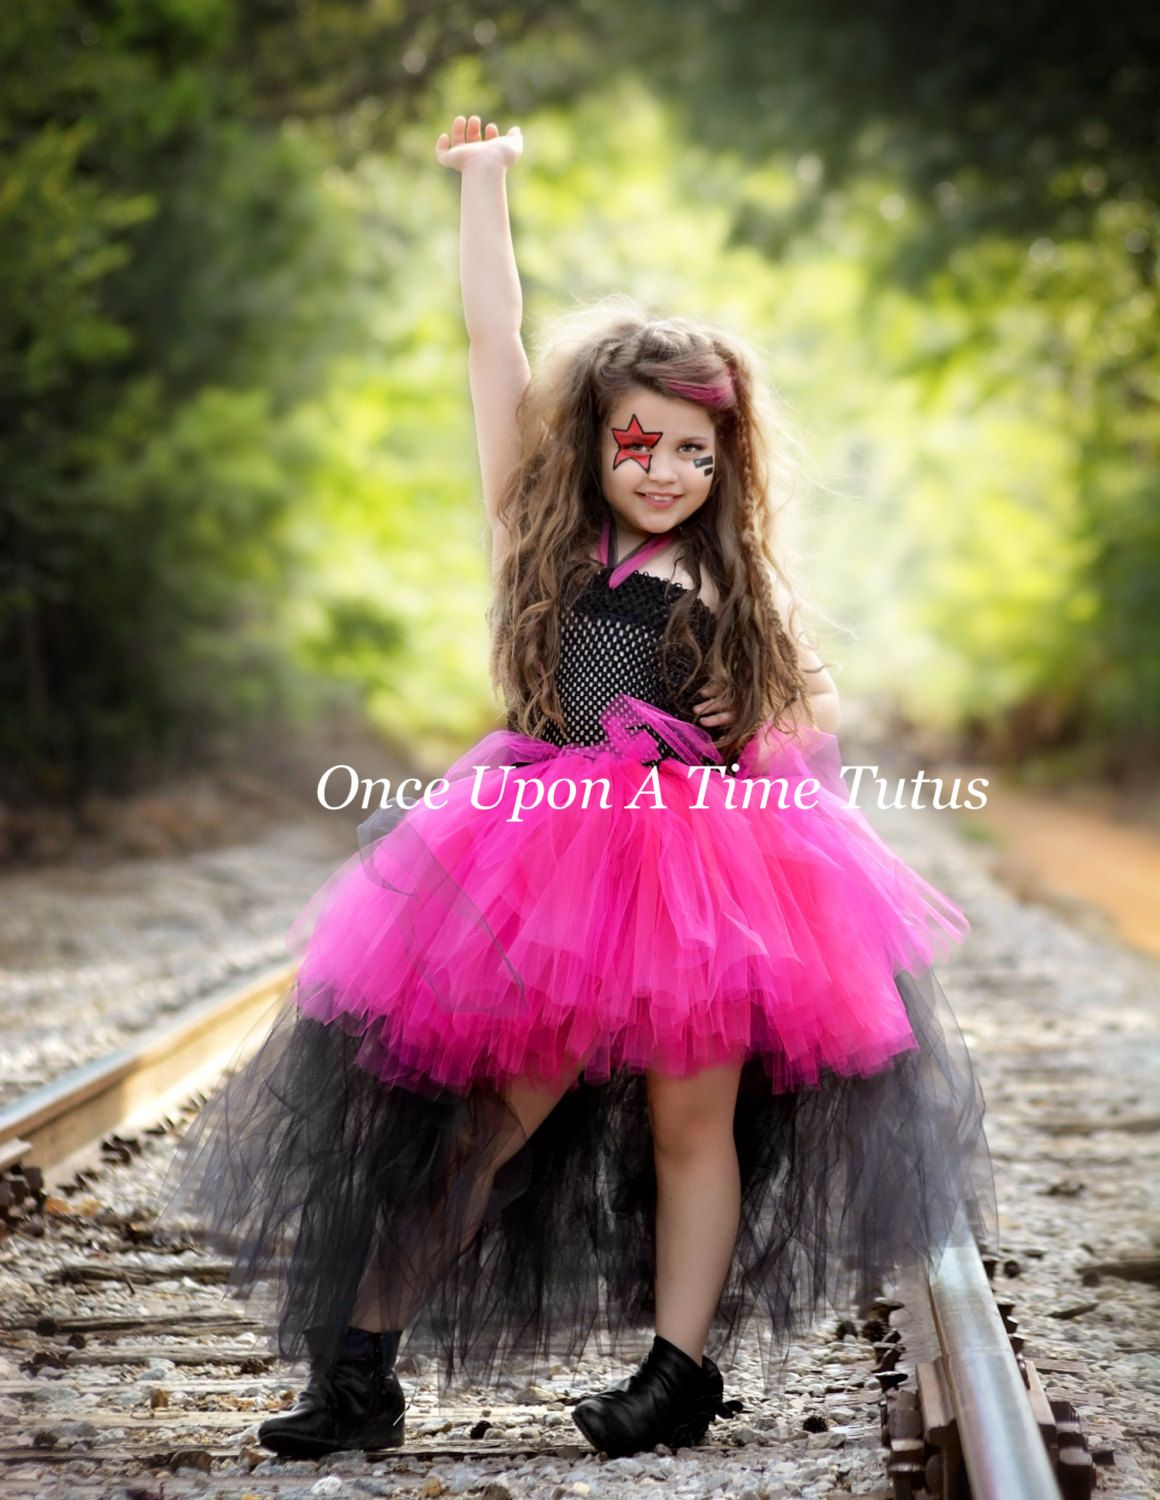 e77a2957e Rockstar Queen Tutu Dress - Birthday Outfit, Photo Prop, Halloween Costume  - Girls Size 2T 3T 4T 5 6 7 8 10 12 - Little Girls Dress Skirt by ...